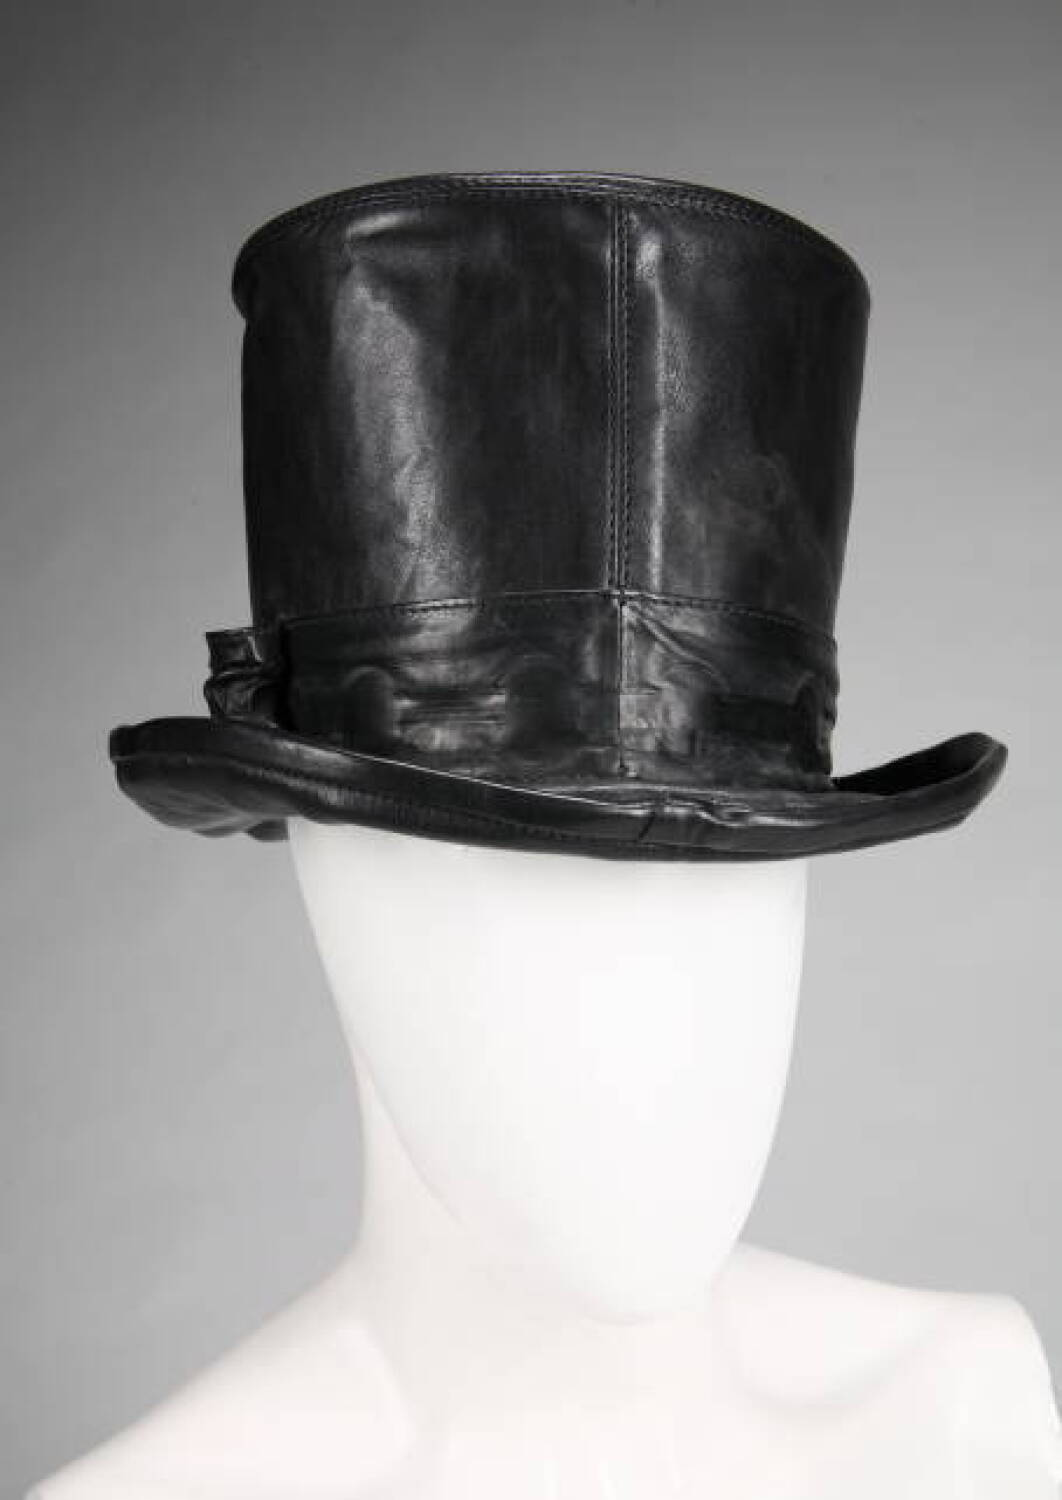 1707e3b3b2a SLASH STAGE WORN CHROME HEARTS LEATHER TOP HAT - Current price   3000